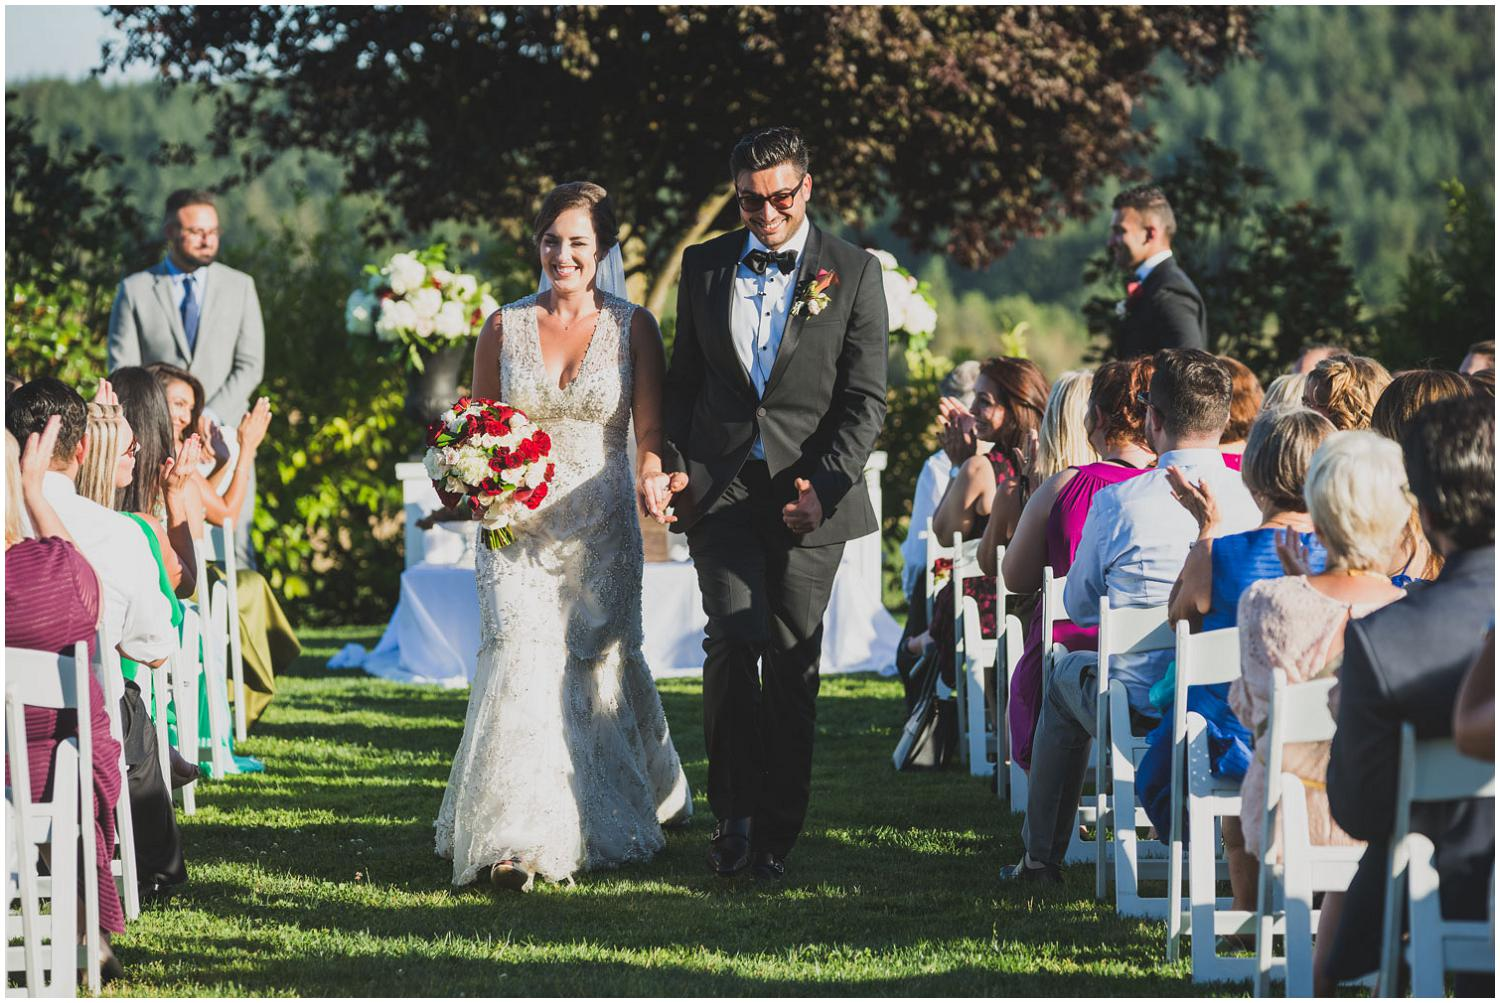 yaaaay! newlyweds walk back down the aisle to applause from friends and family